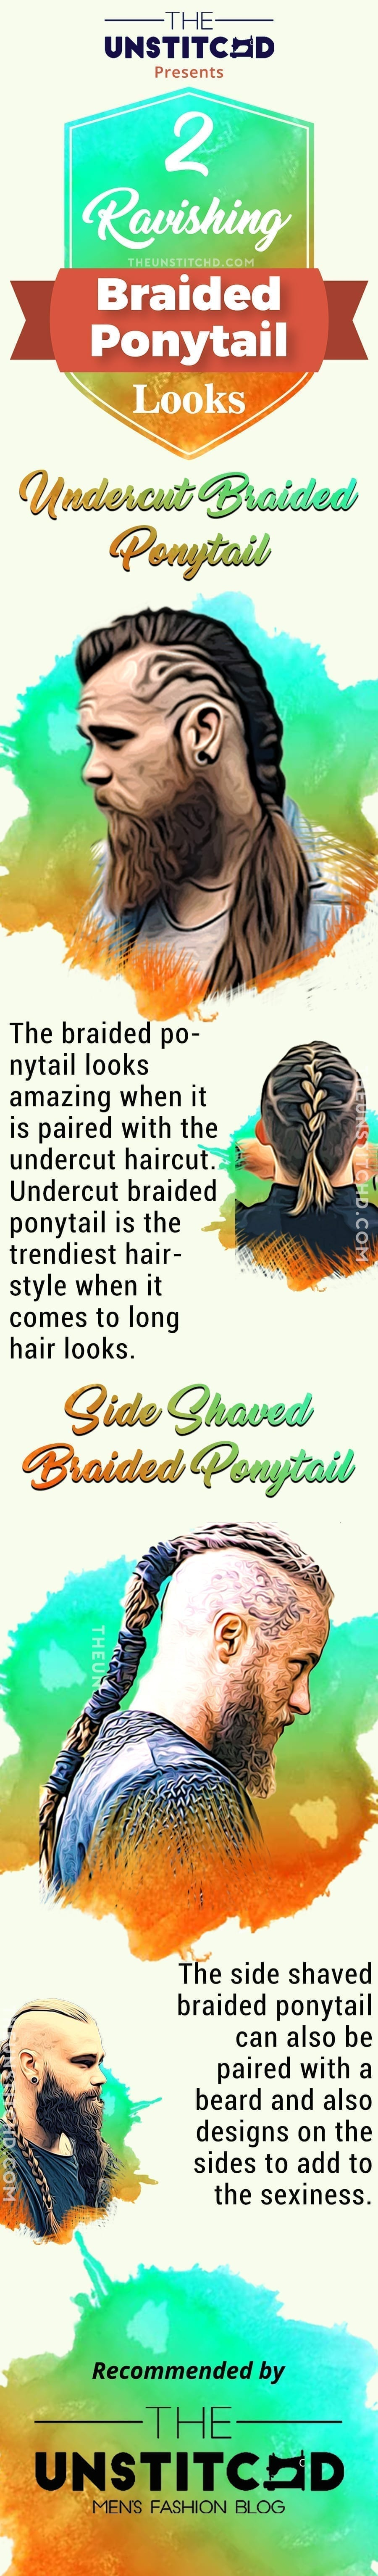 braided-ponytail-hairstyle-info